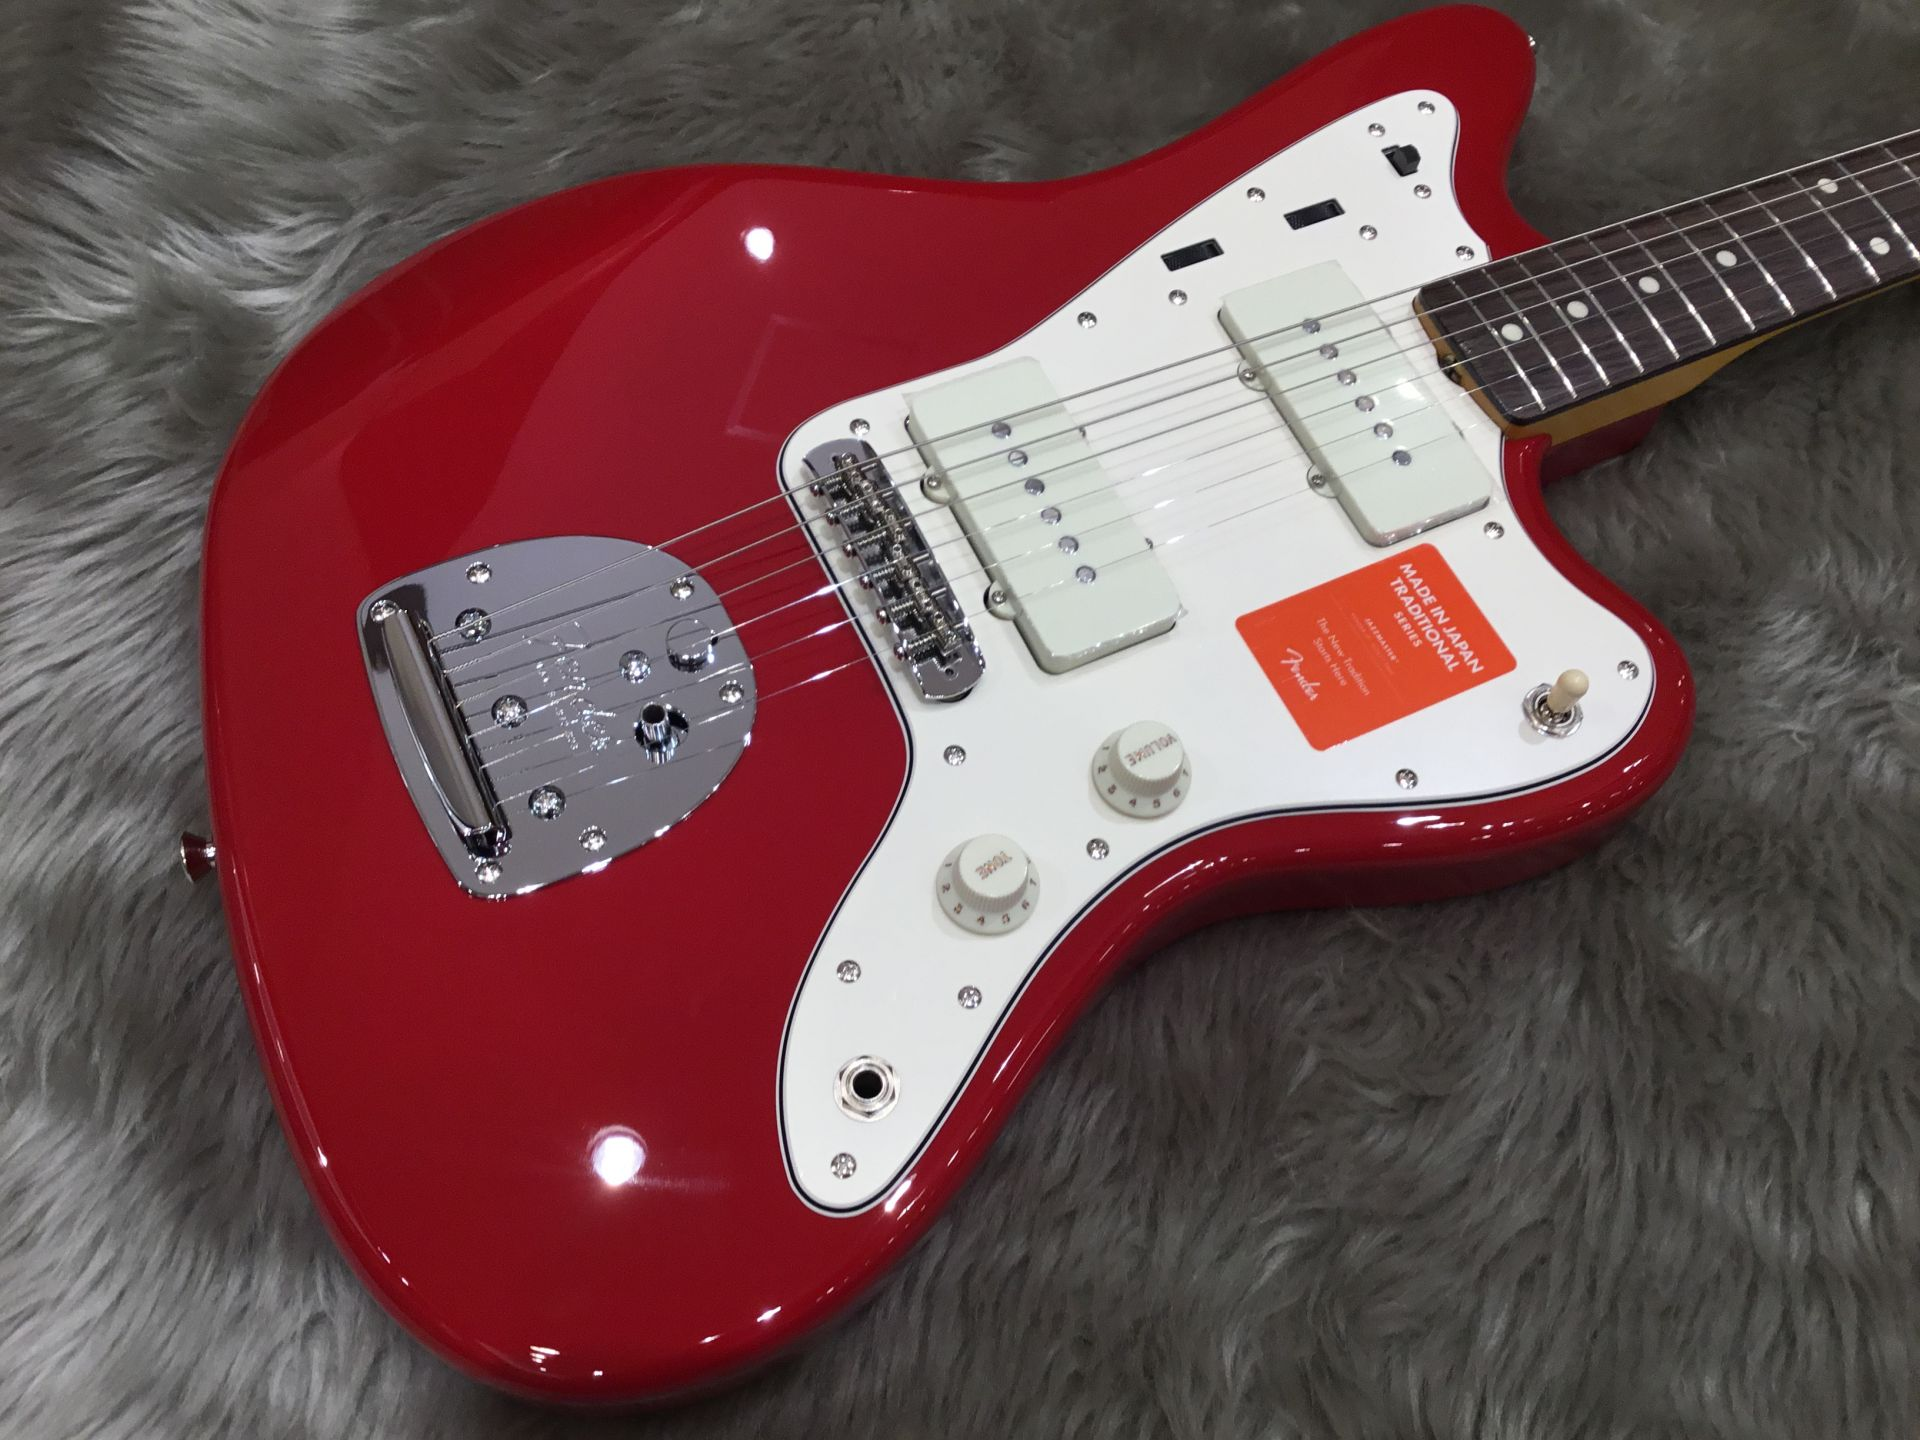 Maide In Japan TRADITIONAL 60S JAZZMASTERのボディトップ-アップ画像